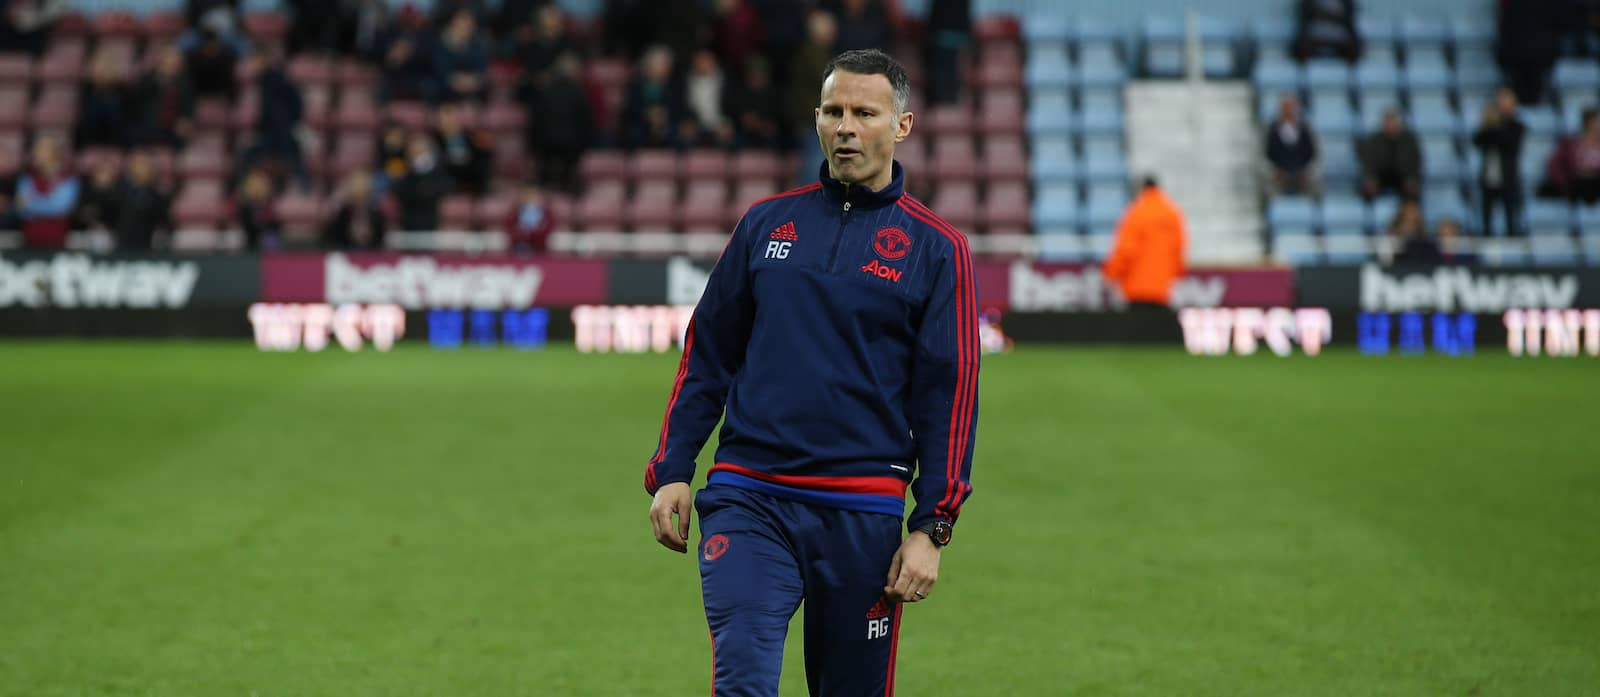 Rene Meulensteen: Ryan Giggs should have succeeded Sir Alex Ferguson instead of David Moyes